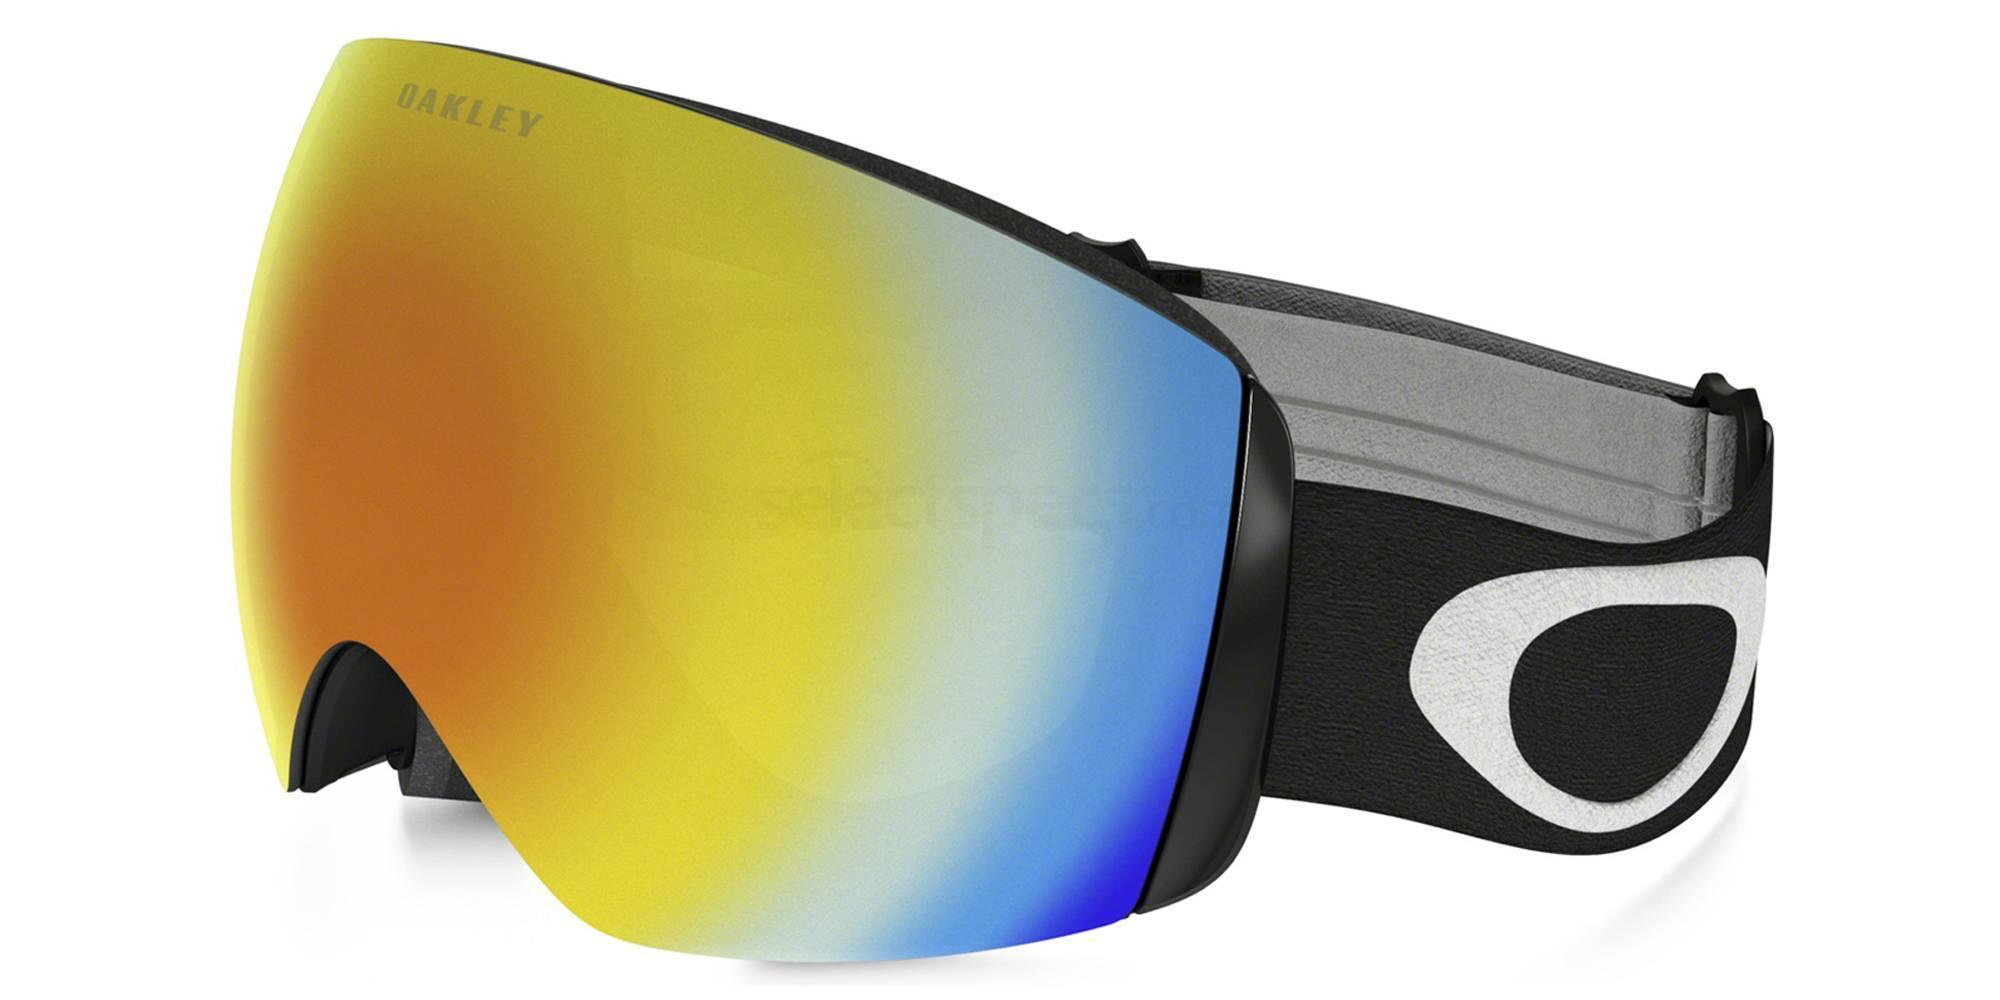 Oakley OO7064 FLIGHT DECK XM